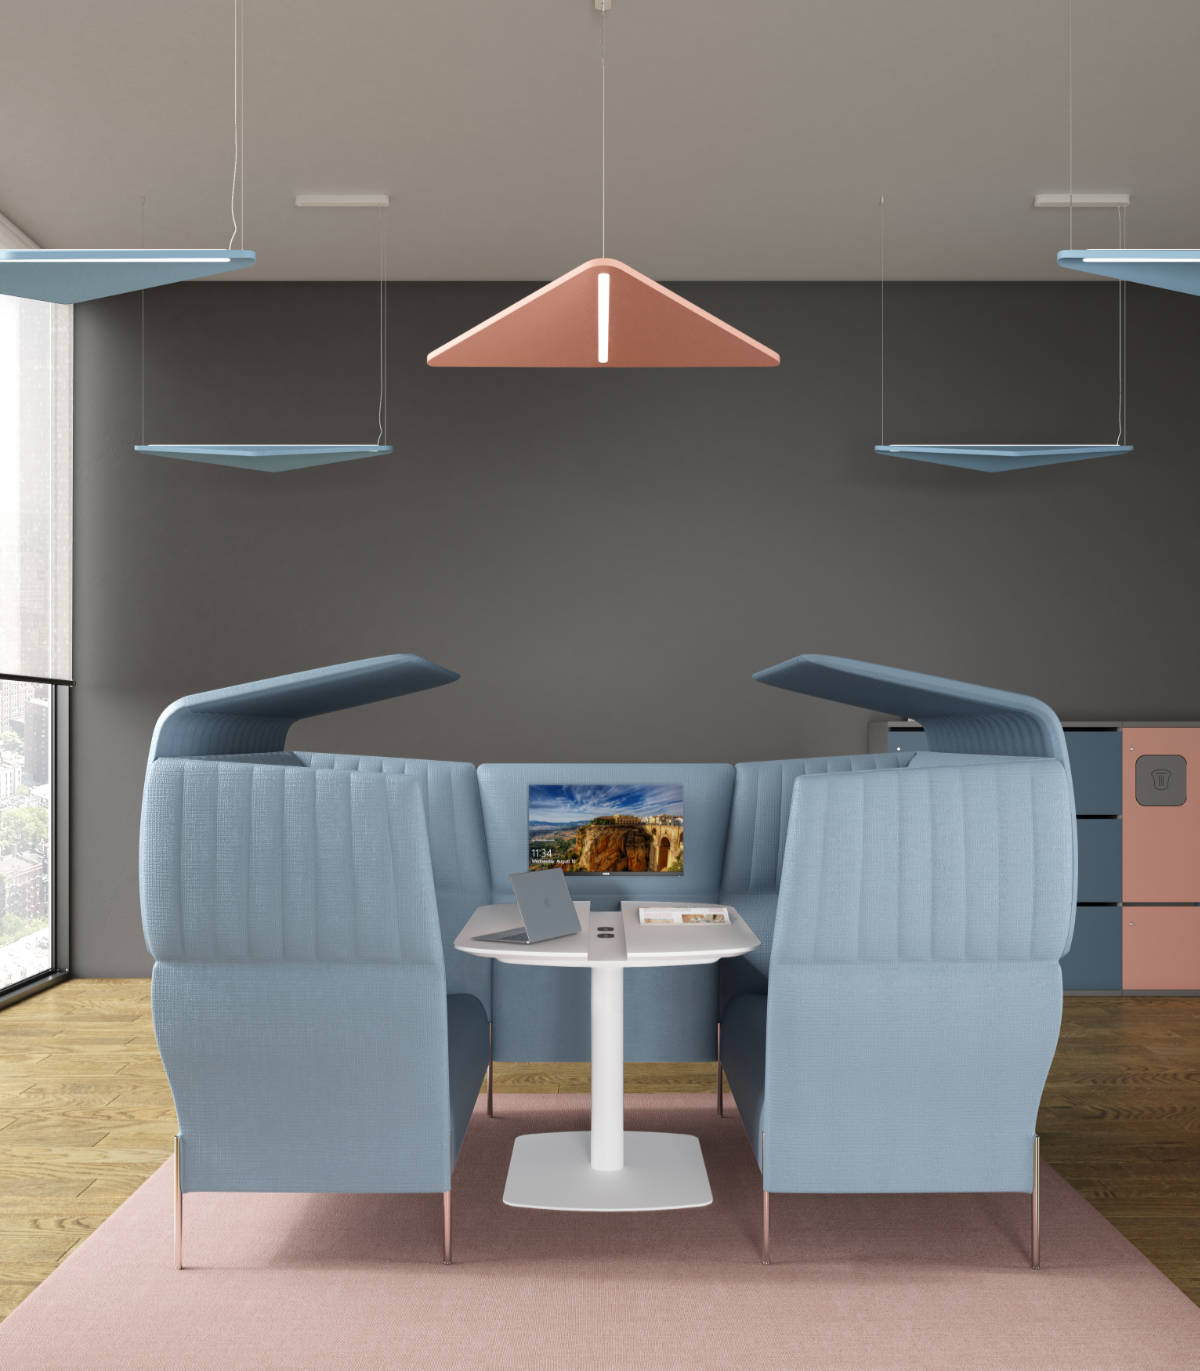 04_Estel_Comfort&Relax_Sofa & Armchair_Dolly Chat